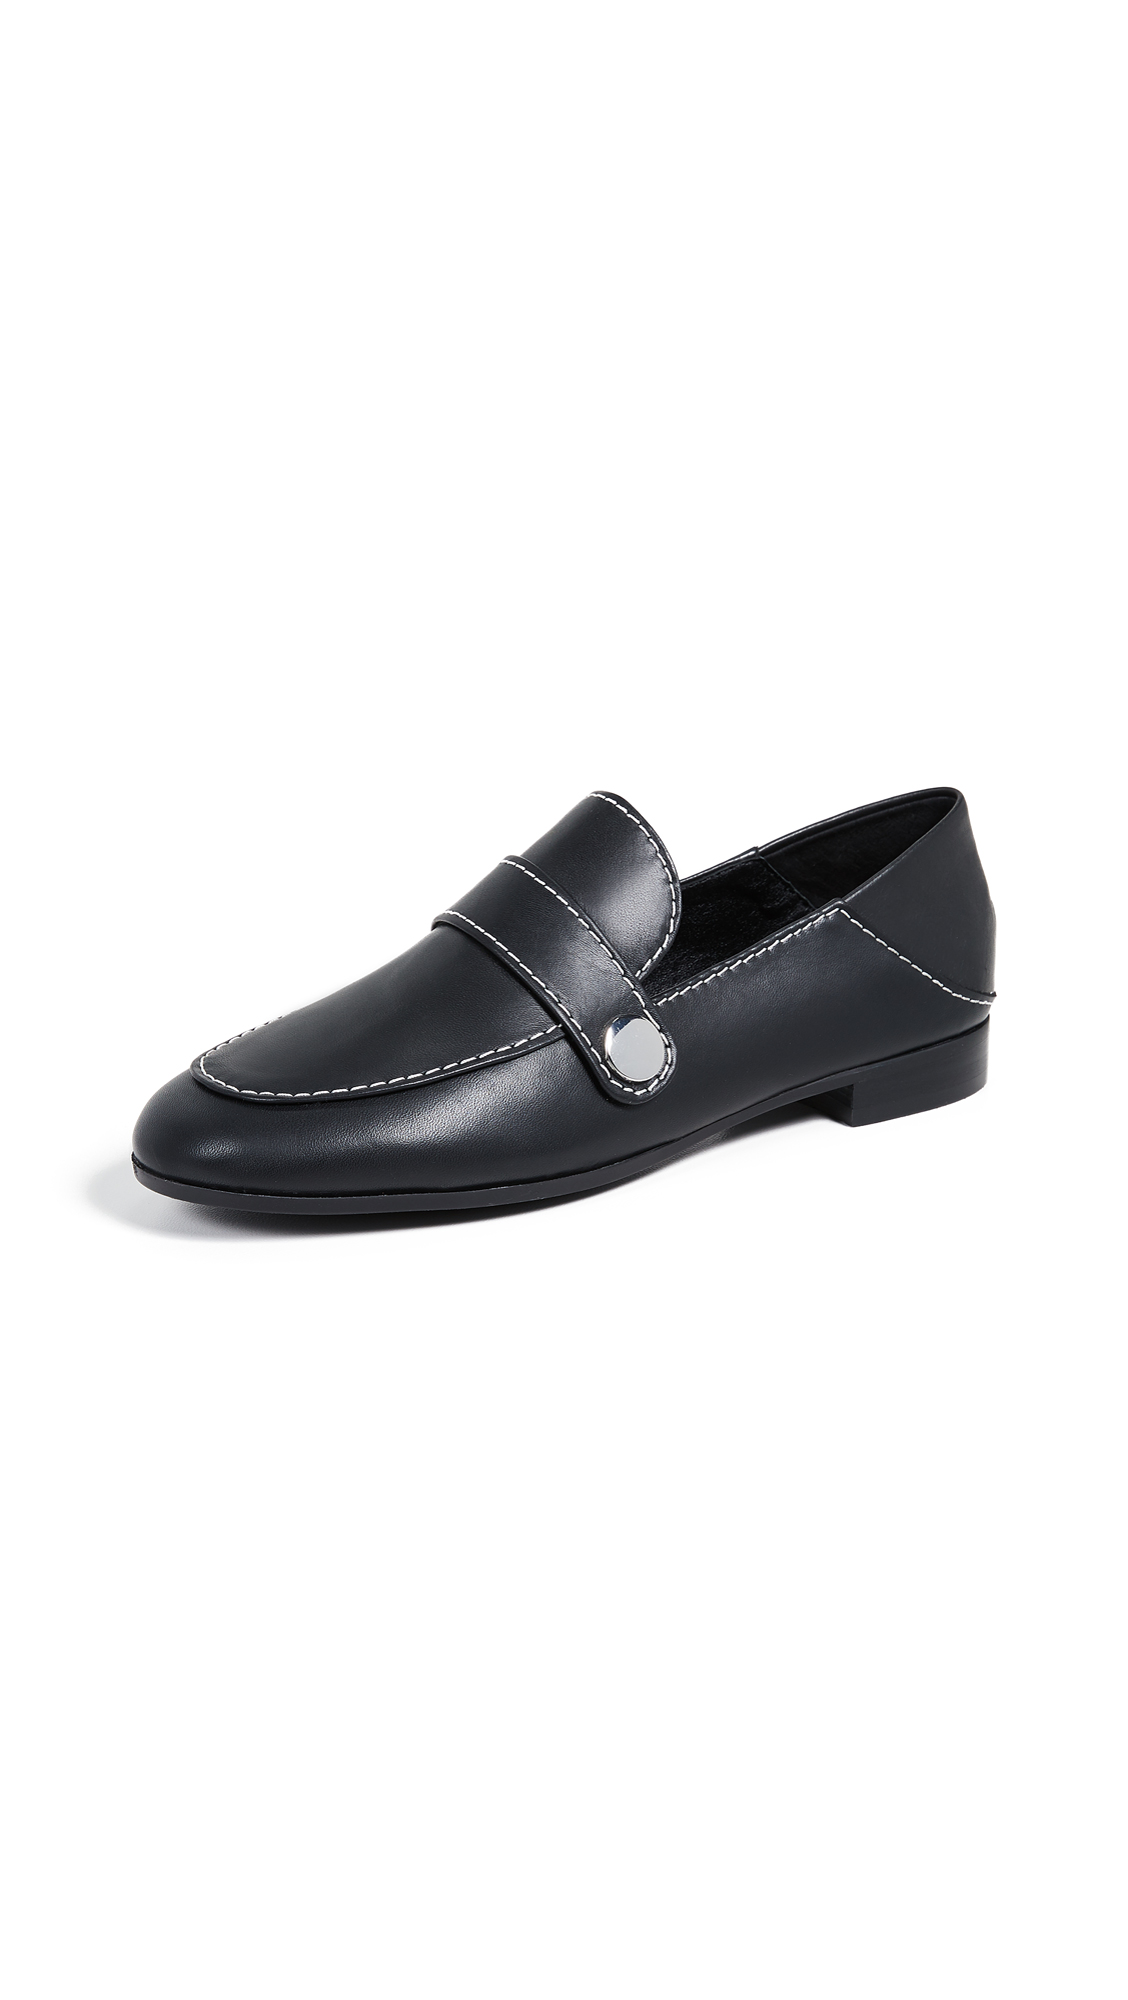 SENSO Cindy Loafers - Ebony